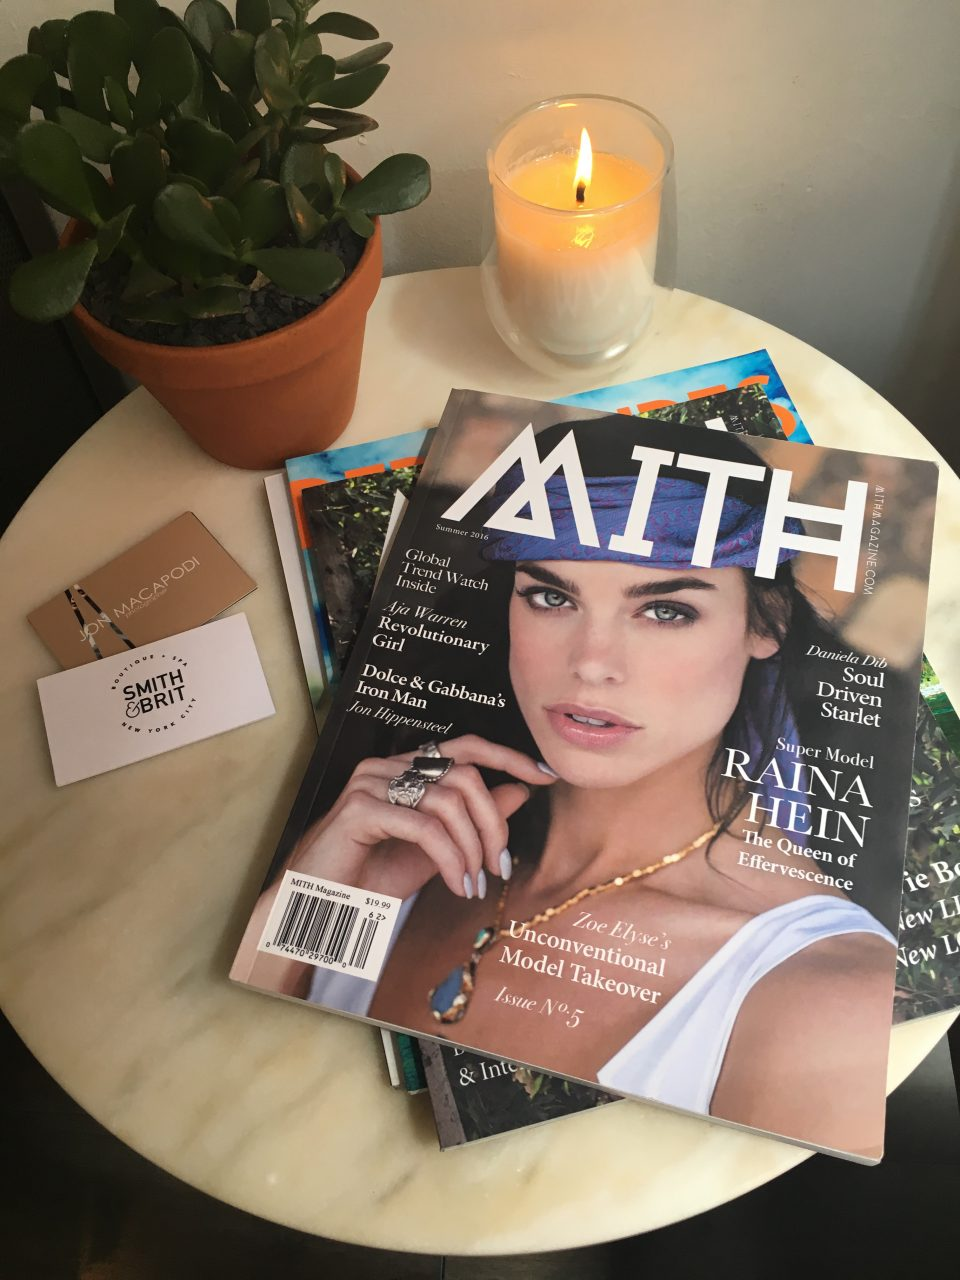 MITH_smith-brit-nyc_wellness_makeover_spa_IMG_7608